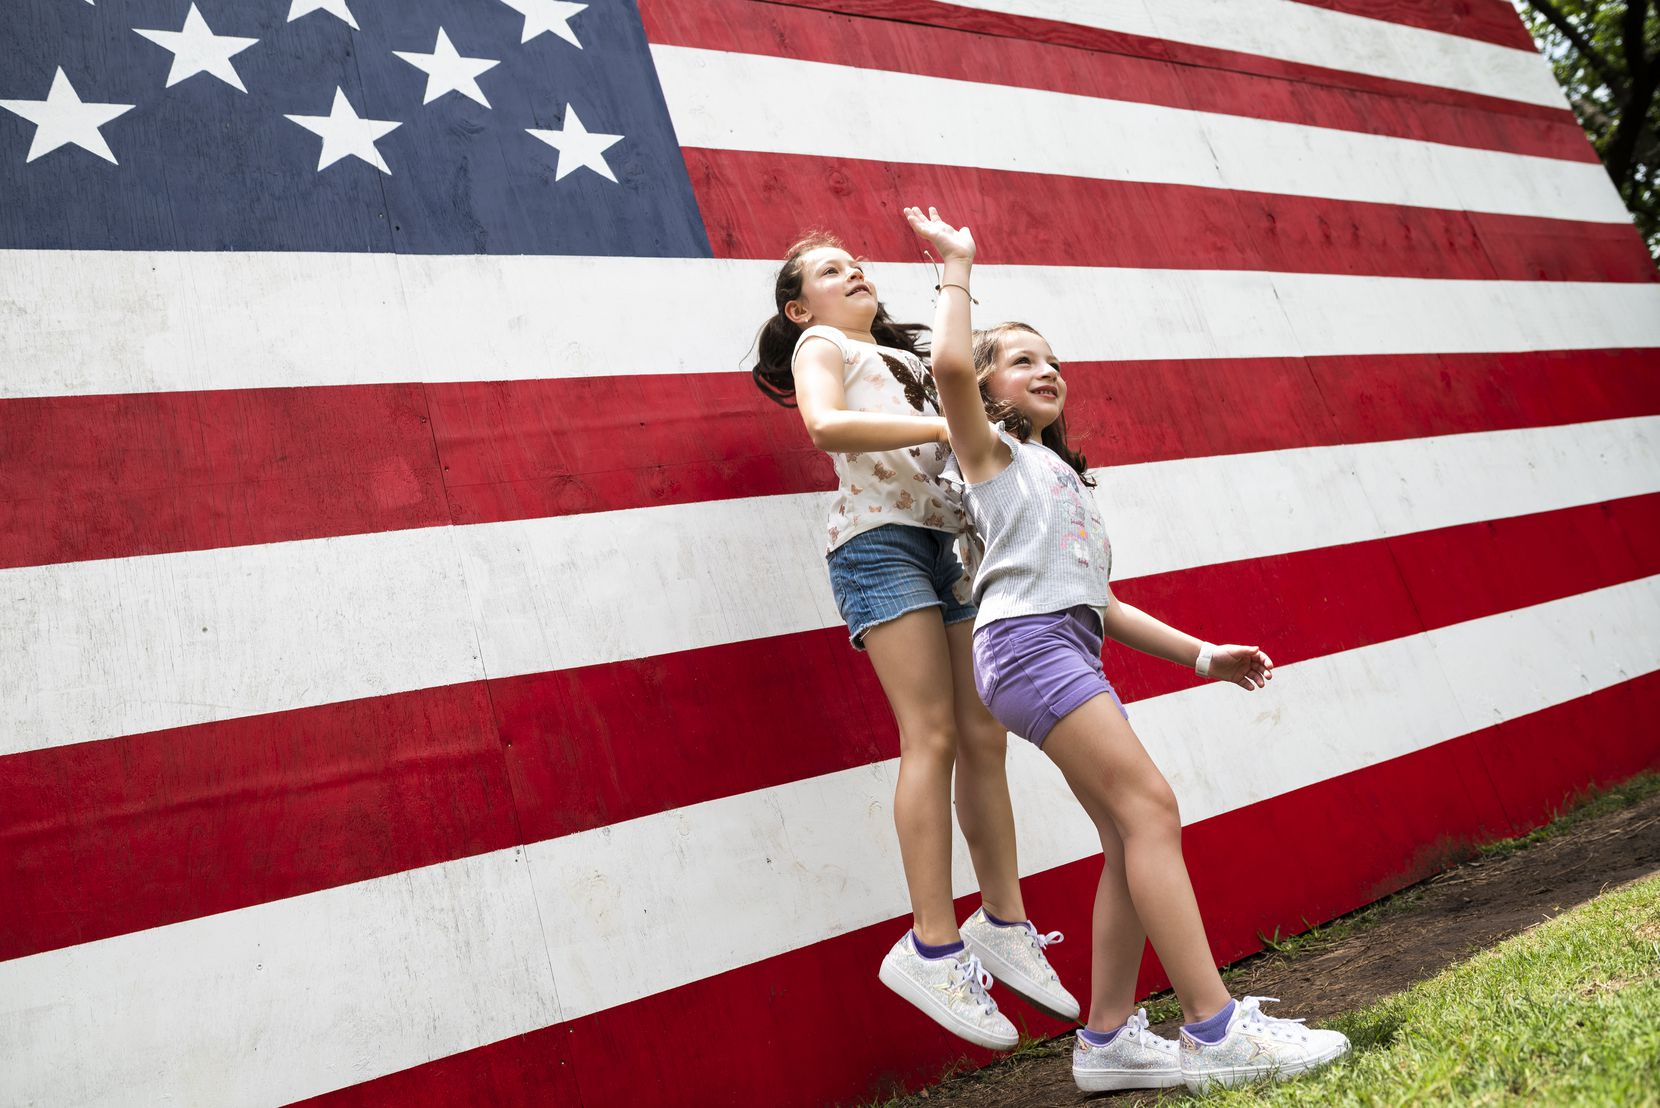 Sisters Emori (left) and Harlow Smith posed while their mother grabbed a snapshot at the painted flag at the Dallas Arboretum.